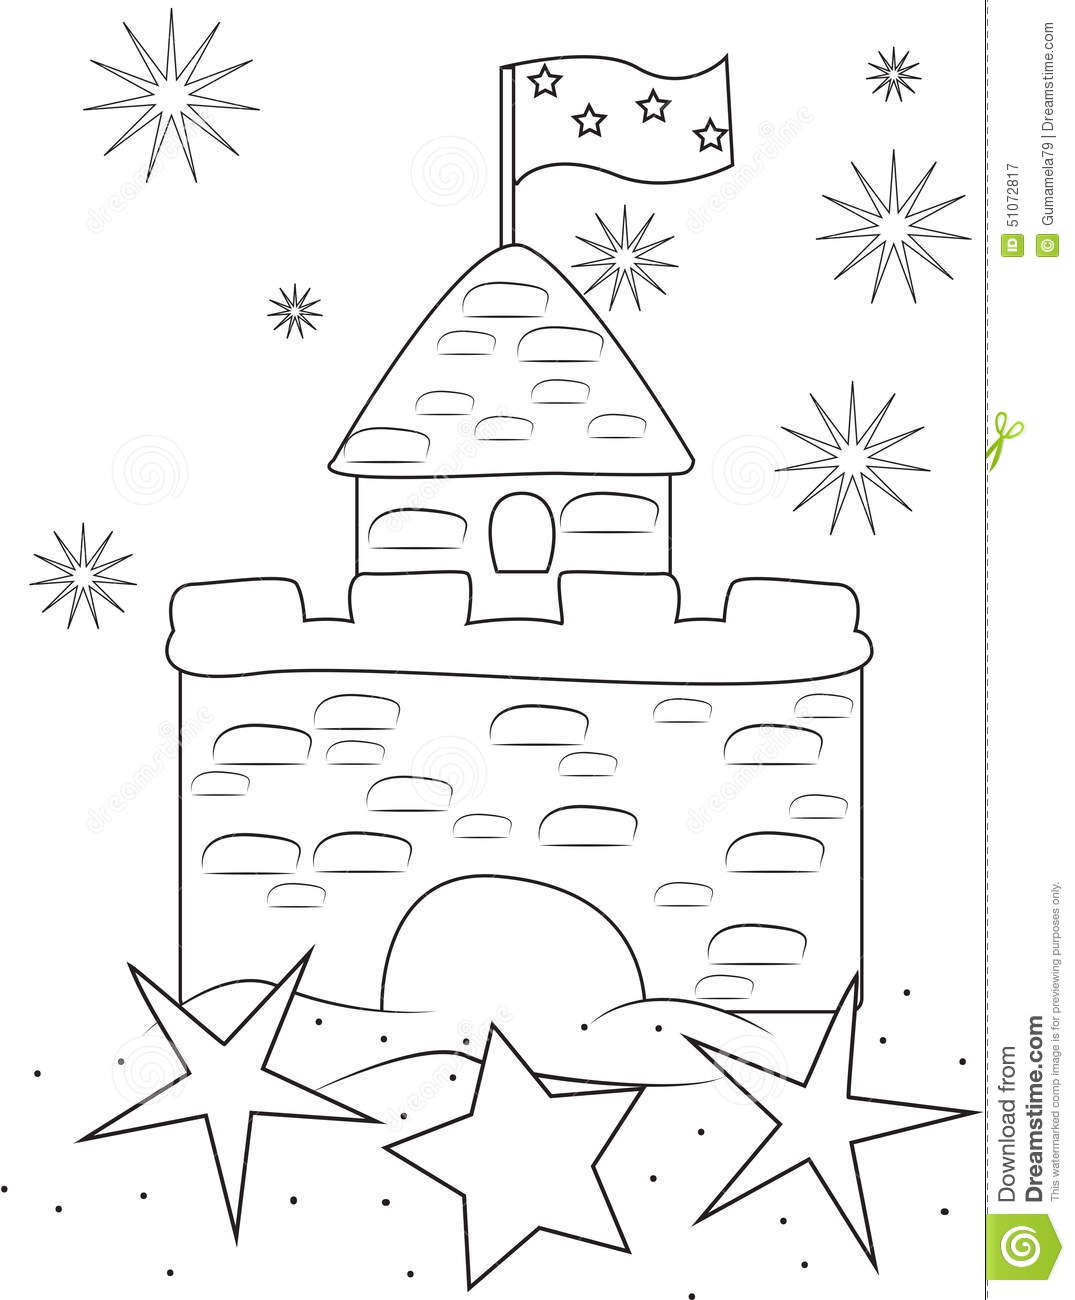 Sand Castle Coloring Page Stock Illustration - Image: 51072817